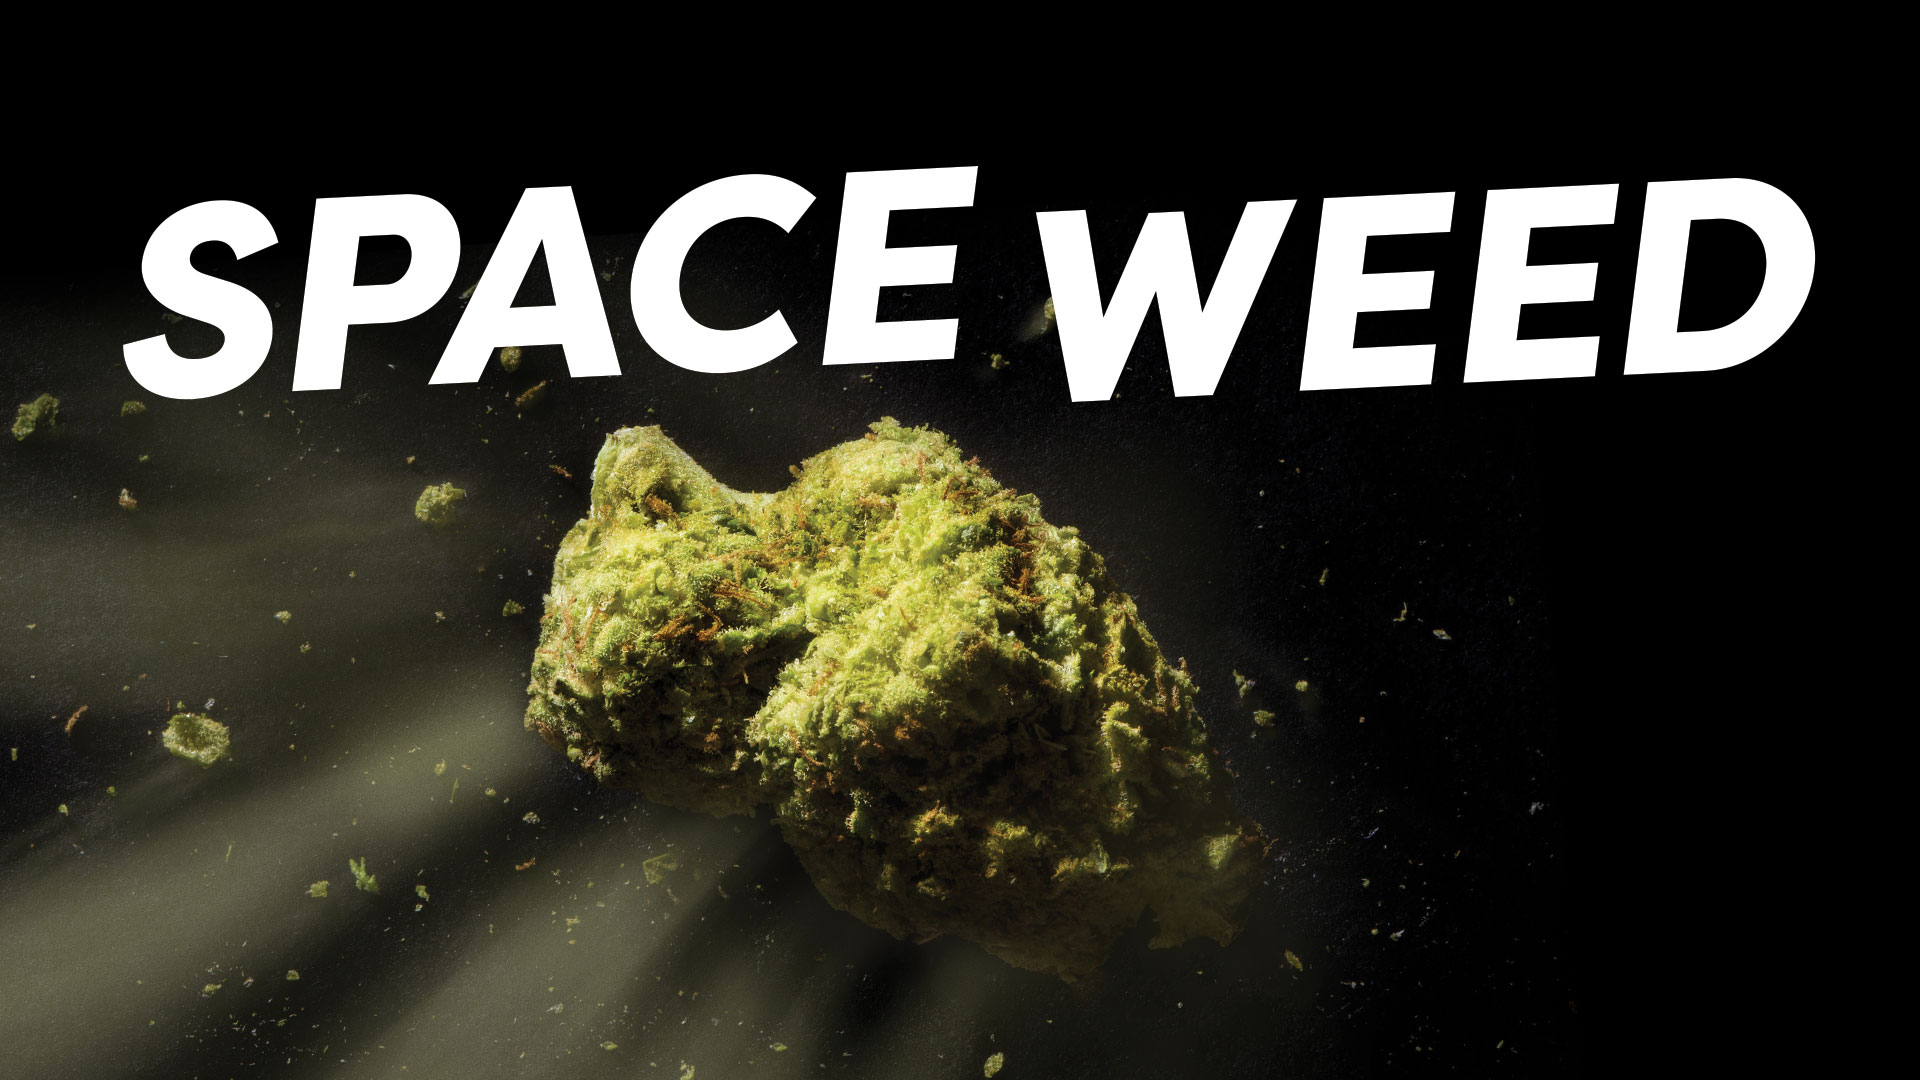 Space Weed logo and background image of cannabis nug made to look like asteroid in space.